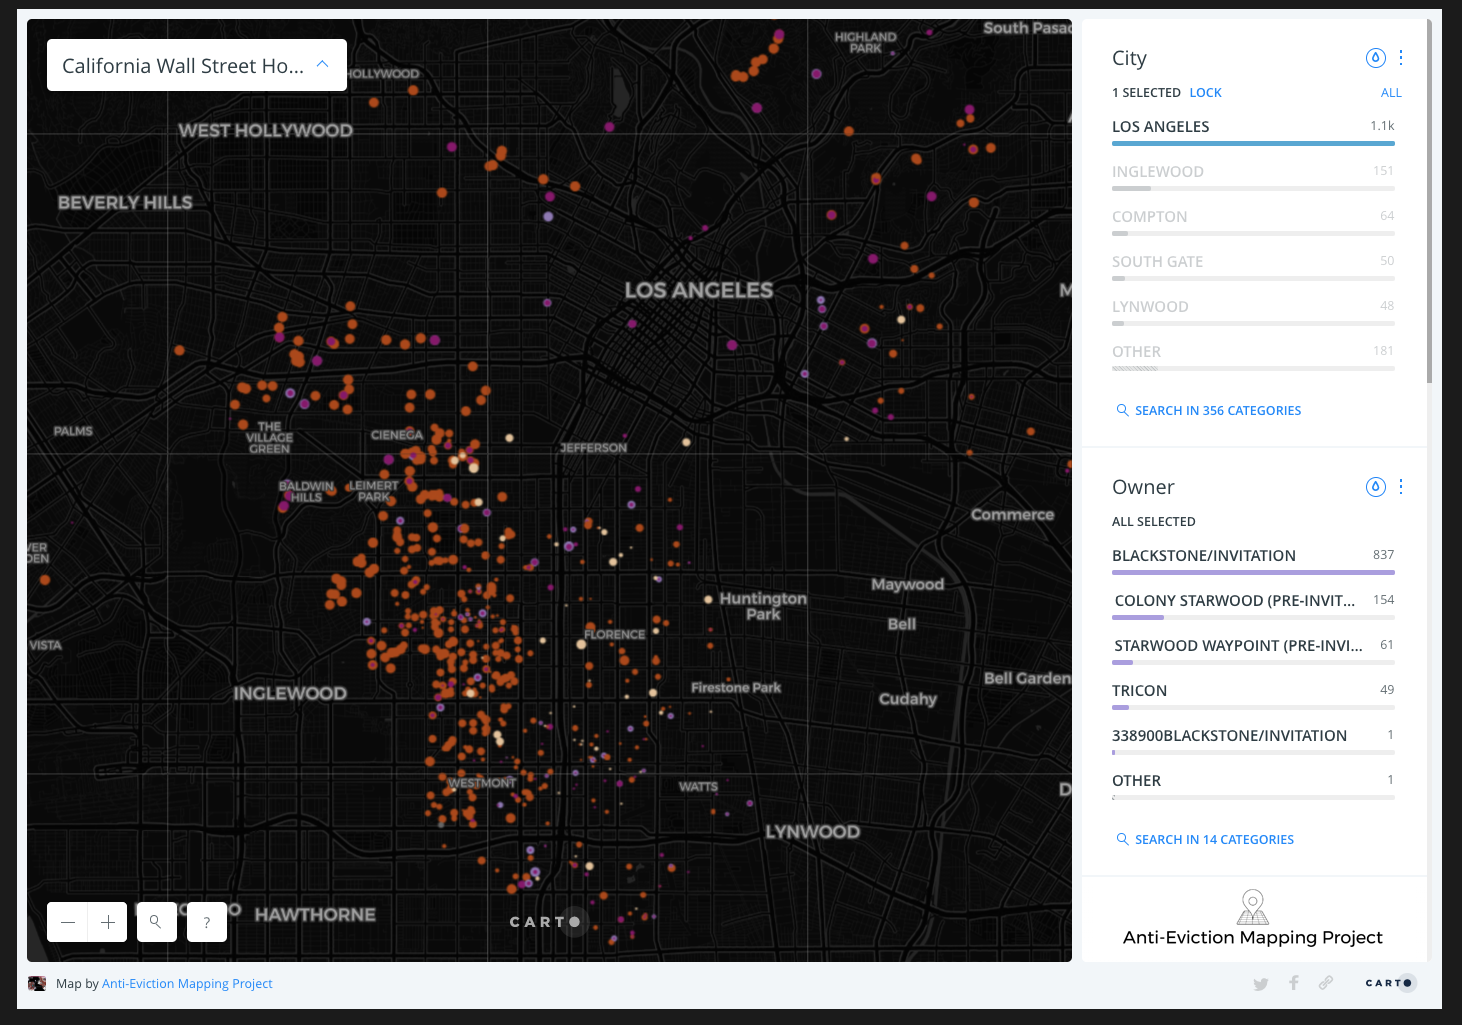 Wall Street Landlords, Los Angeles - Anti-Eviction Mapping Project